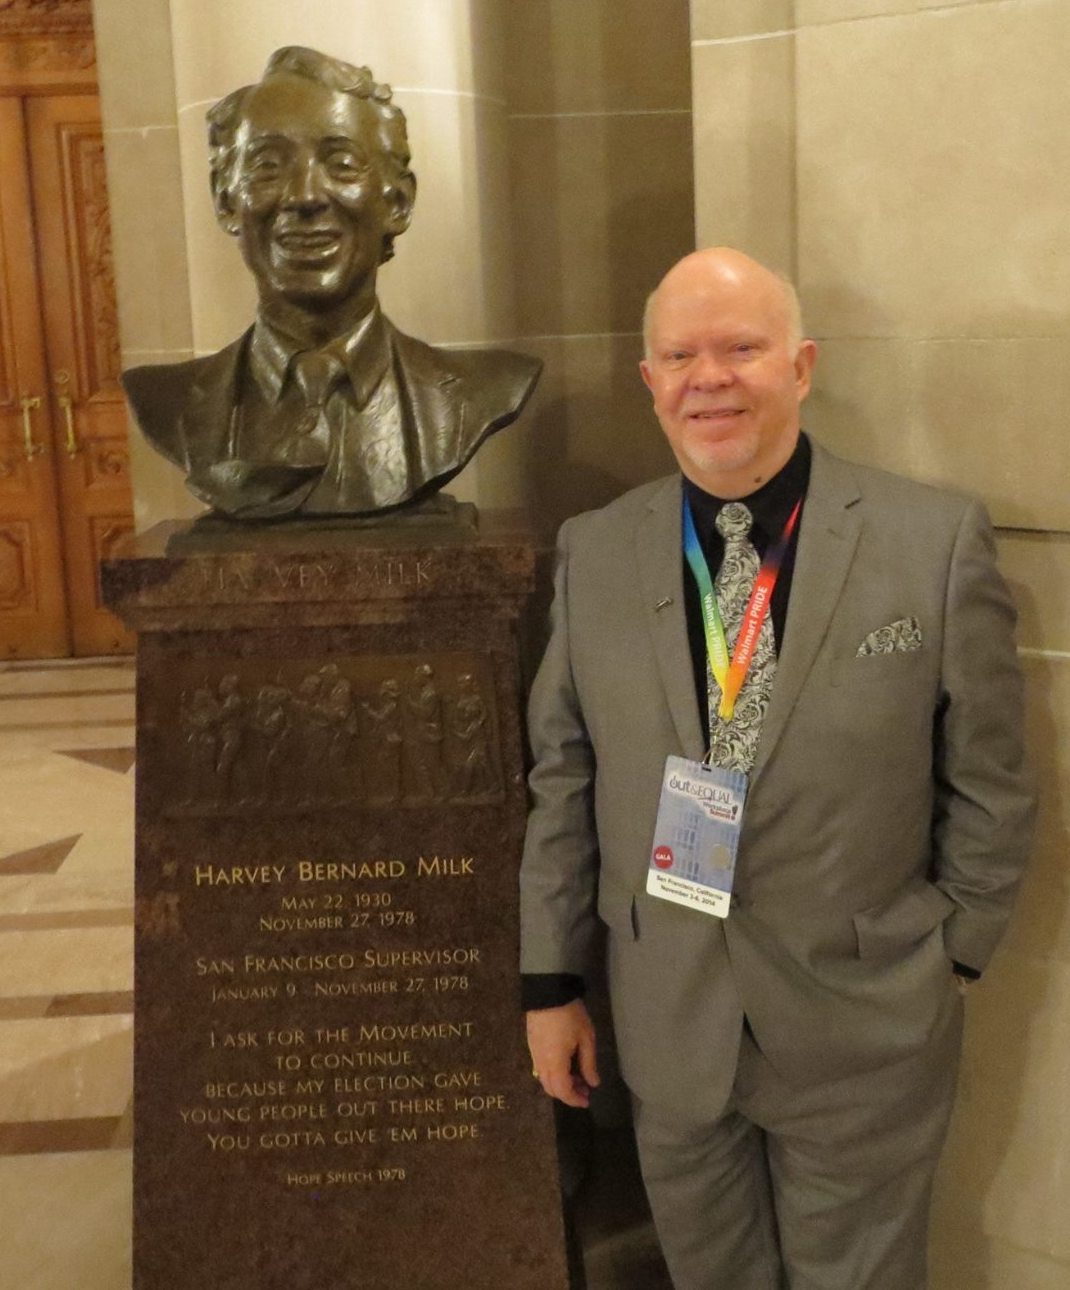 """""""Slade"""" Childers, years later, beside the bust of Harvey Milk in San Francisco City Hall"""